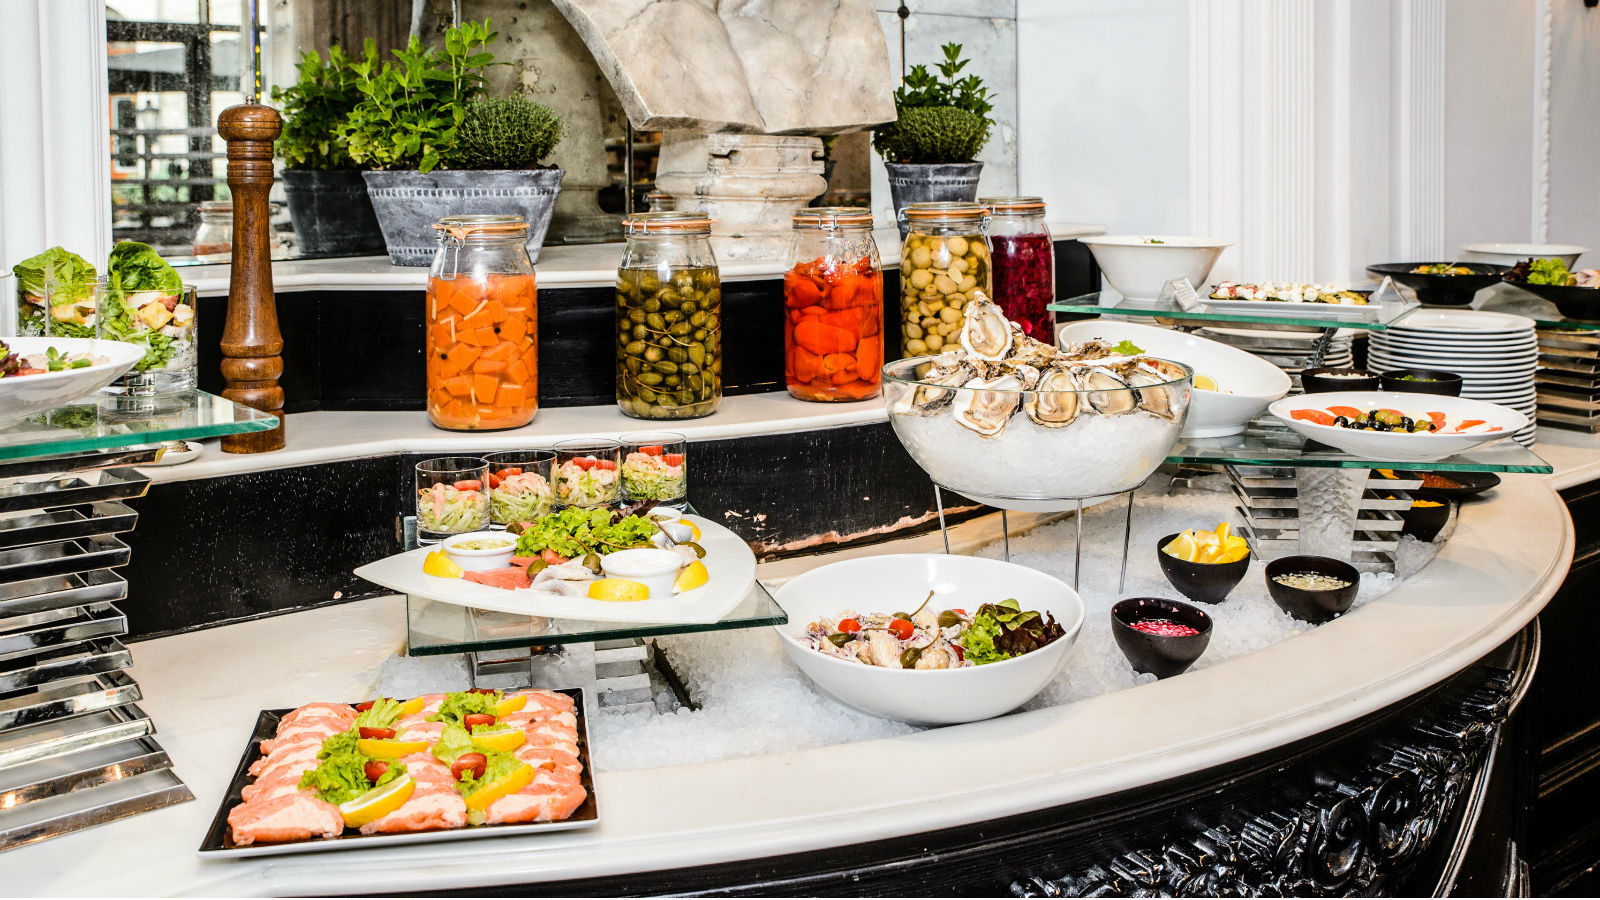 Bristol Hotel Warsaw - Sunday Brunch